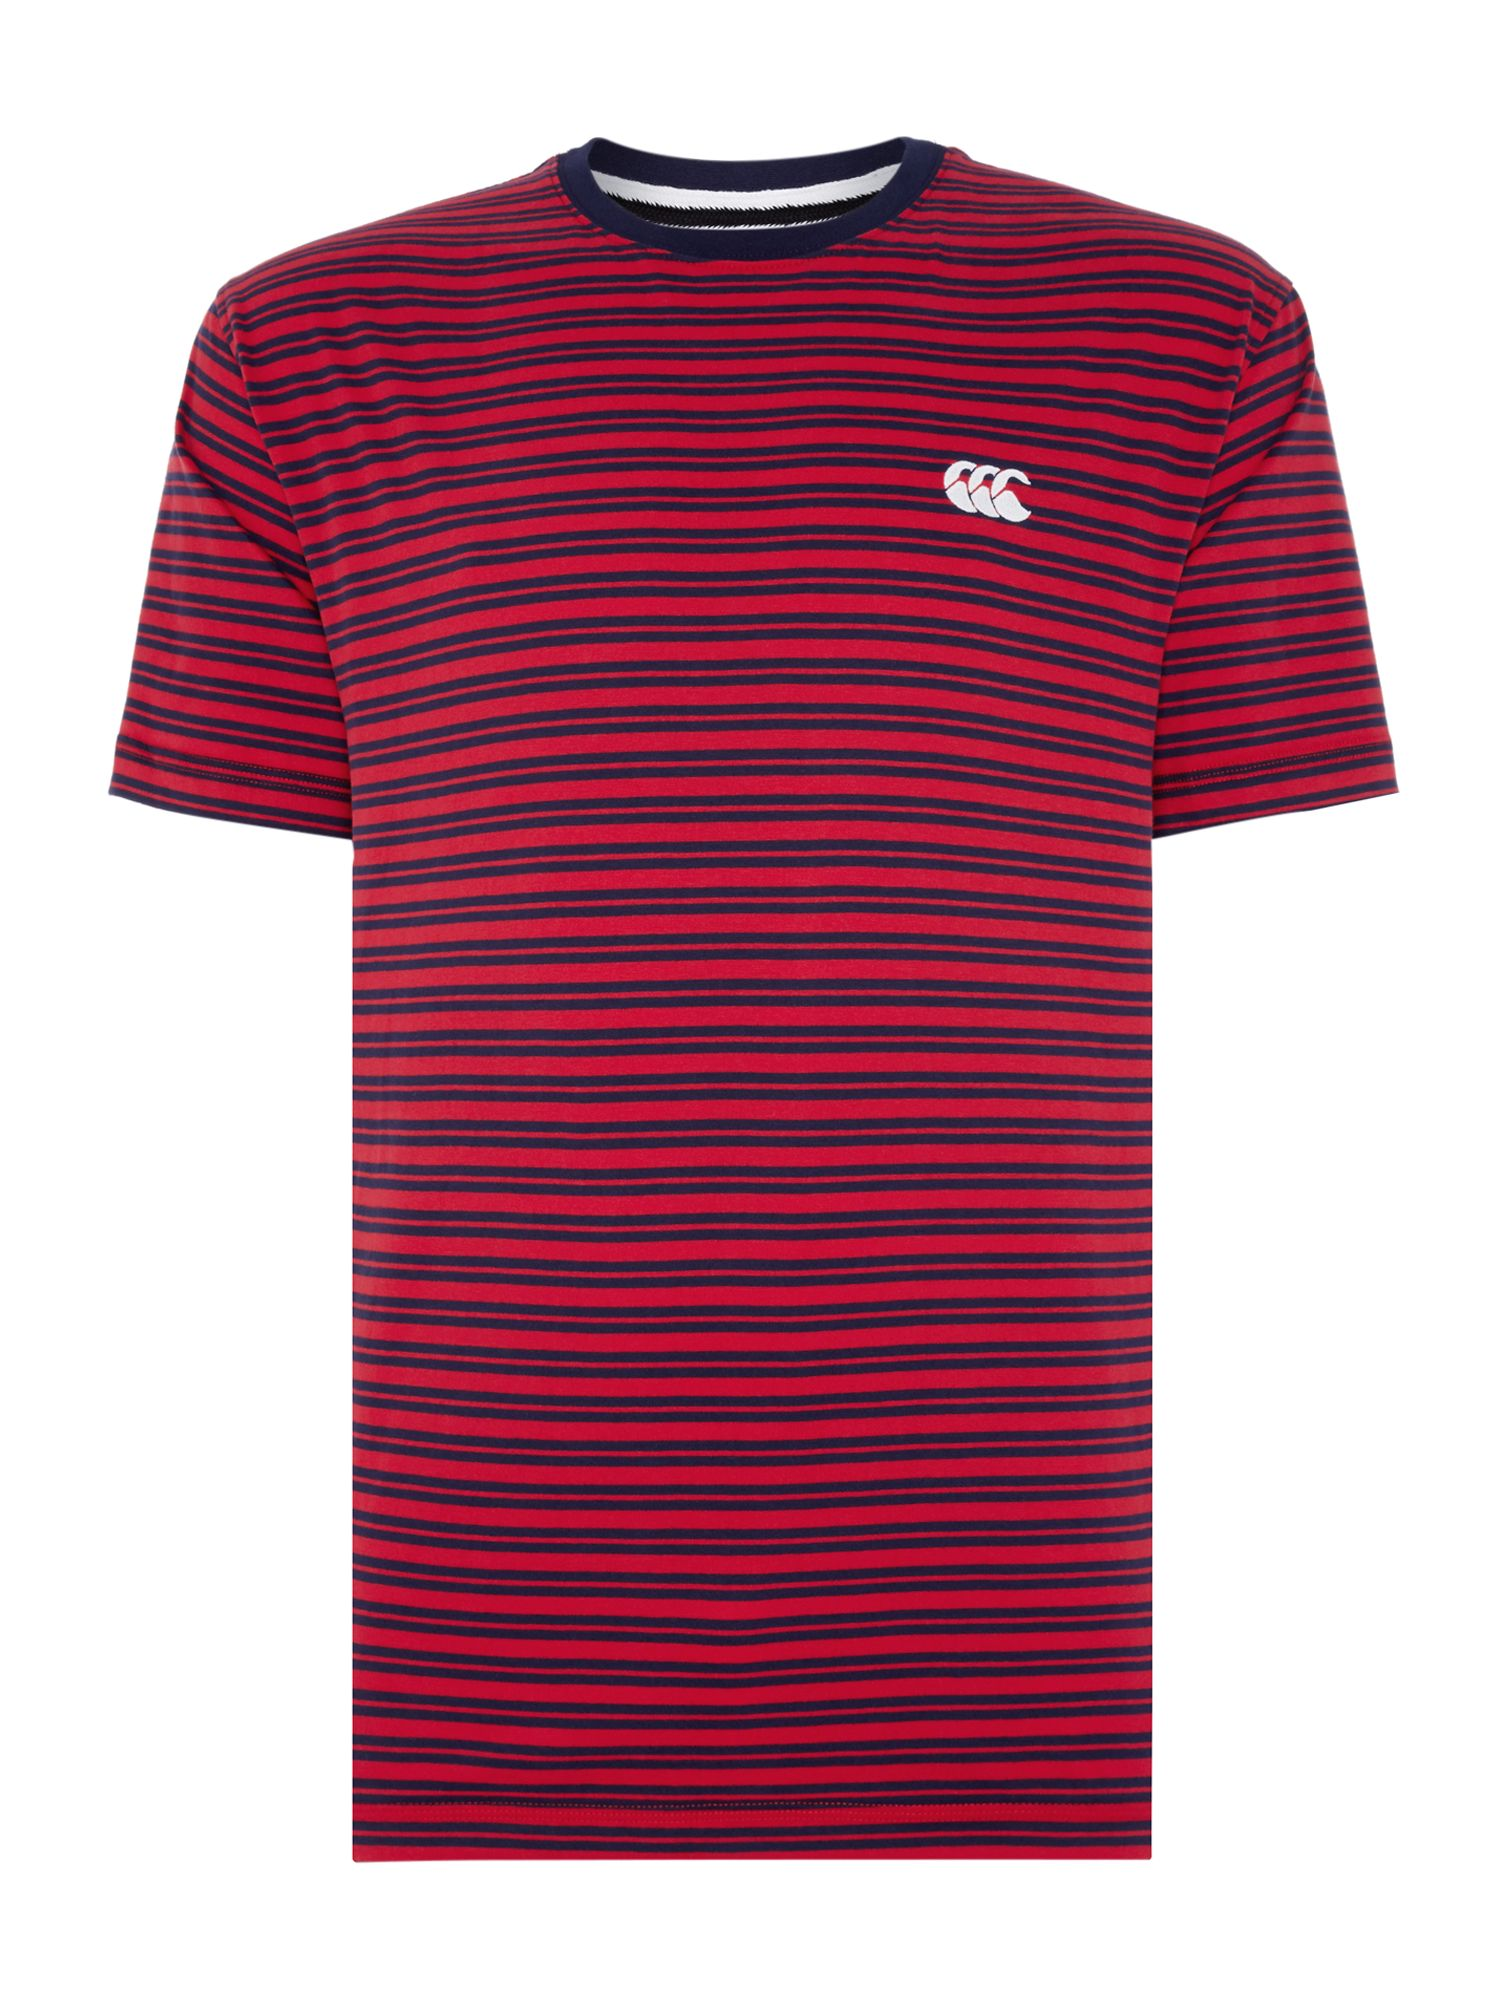 Men's Canterbury Yarn Dyed Stripe Tee, Red